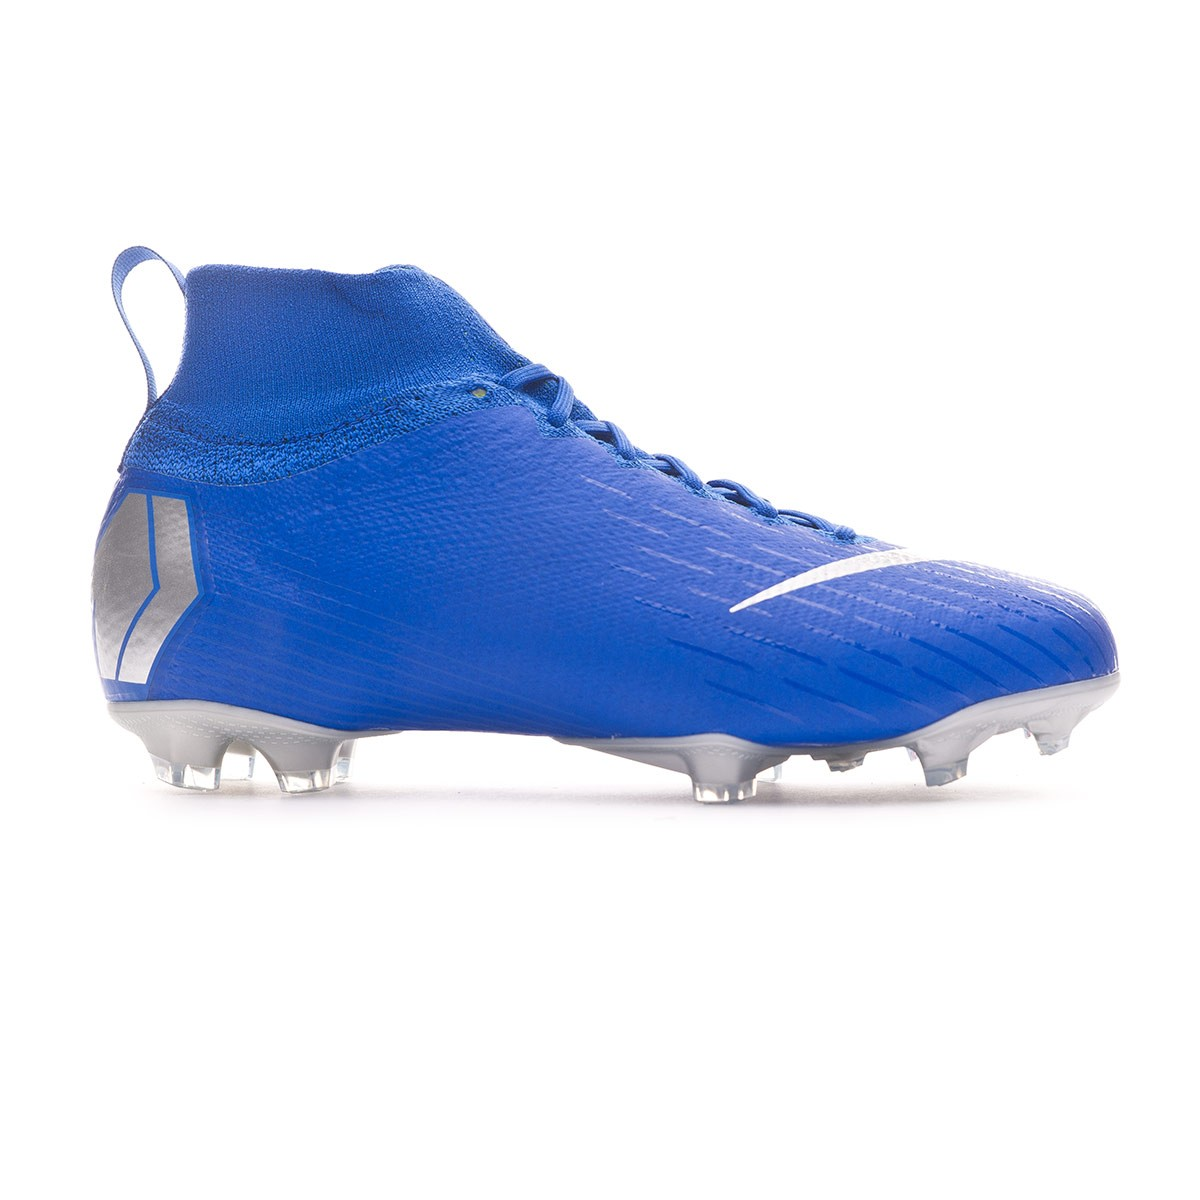 d761d96224 Football Boots Nike Kids Mercurial Superfly VI Elite FG Racer blue-Metallic  silver-Black-Volt - Tienda de fútbol Fútbol Emotion